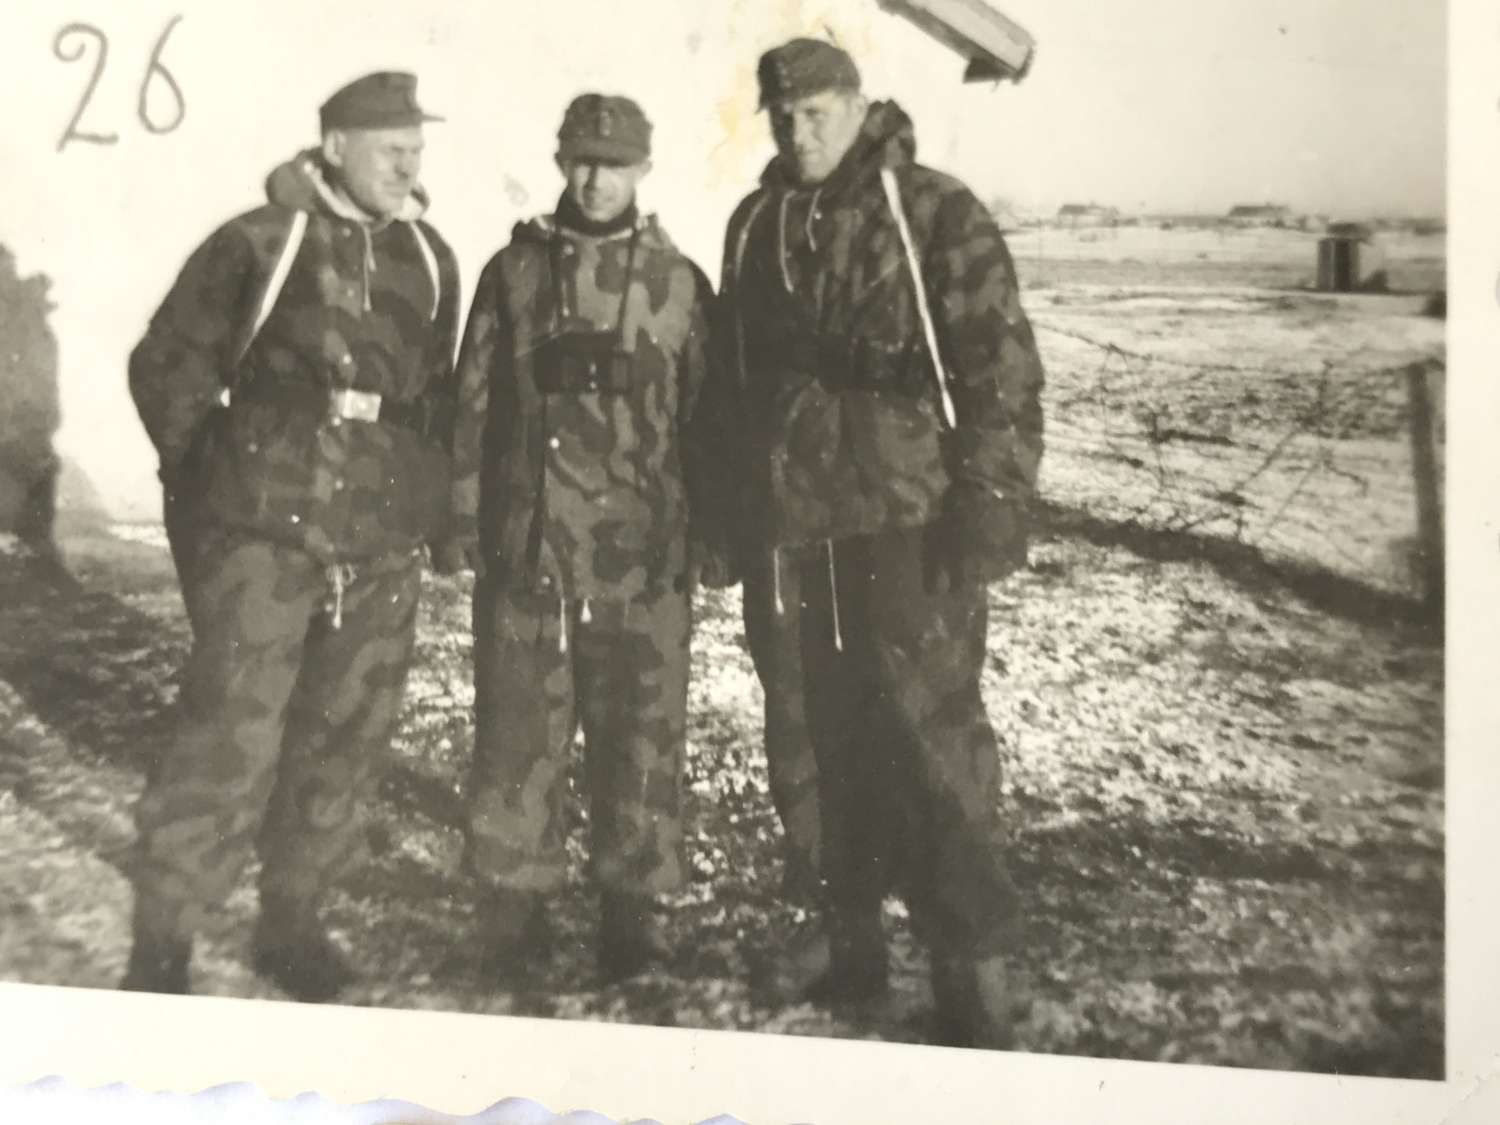 Three photographs of Germans in winter camo uniforms 1944